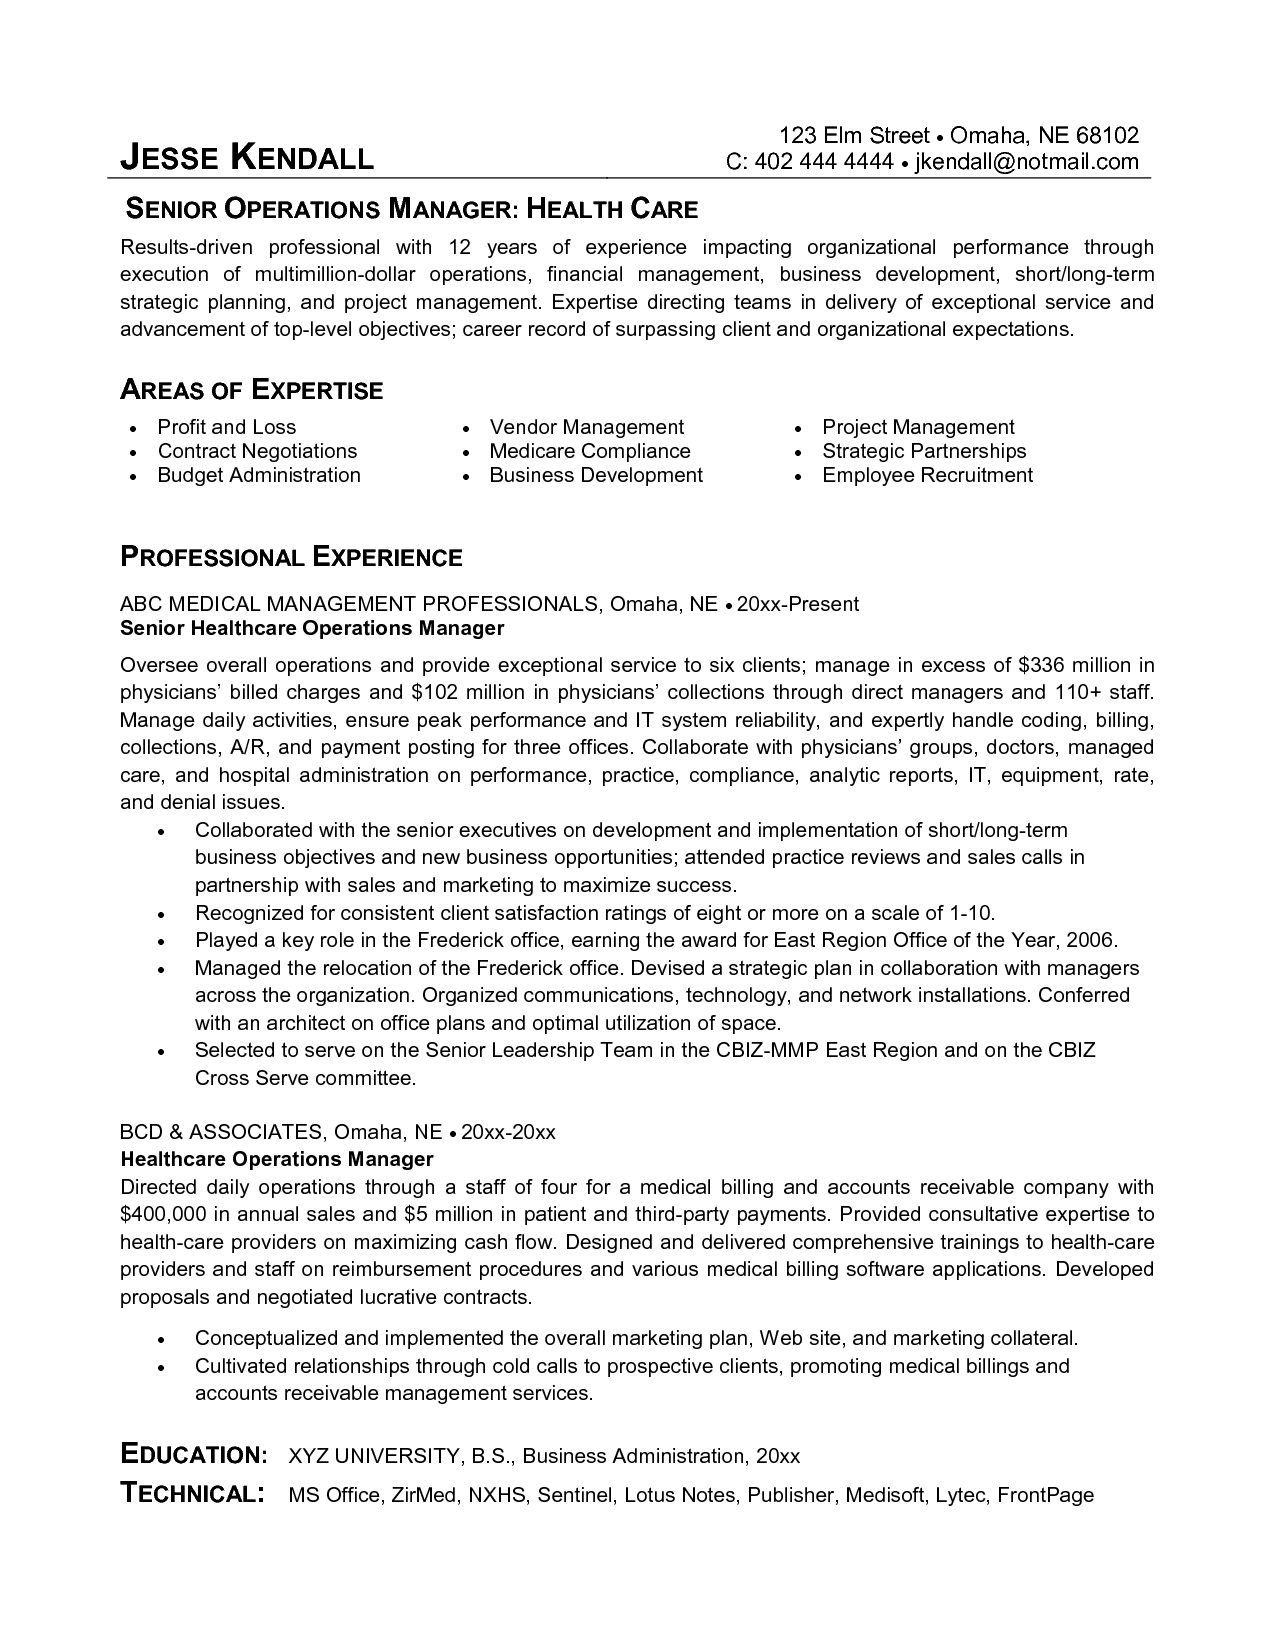 Resume Examples Healthcare Management | Pinterest | Resume examples